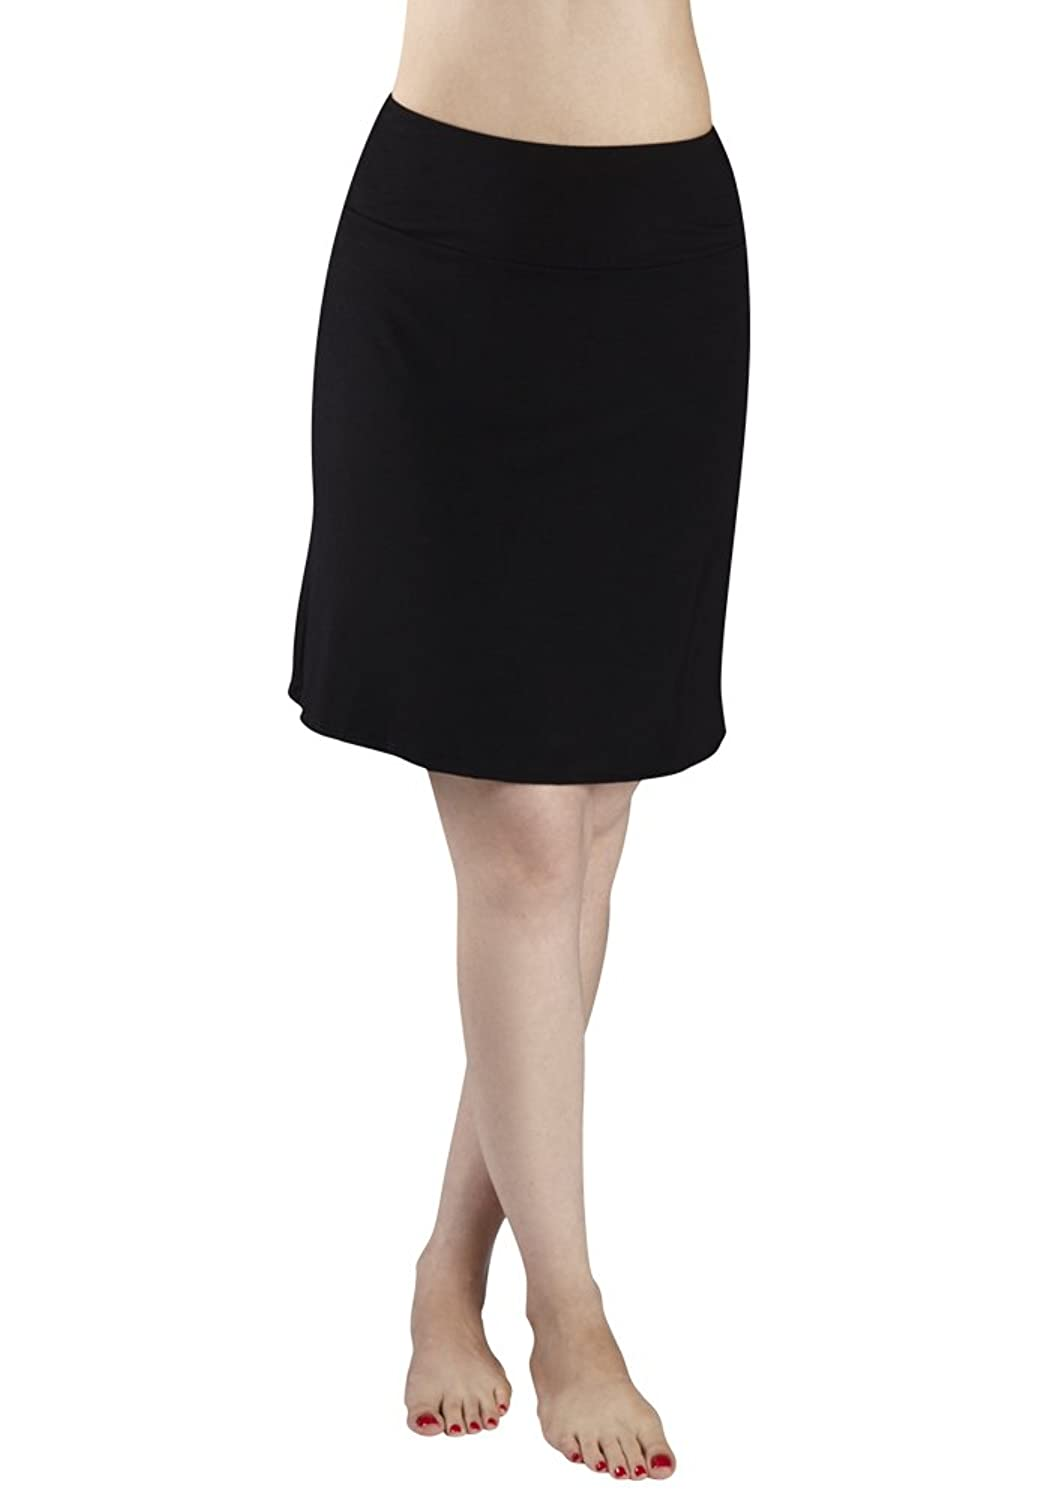 30 in touch bamboo above the knee skirt www